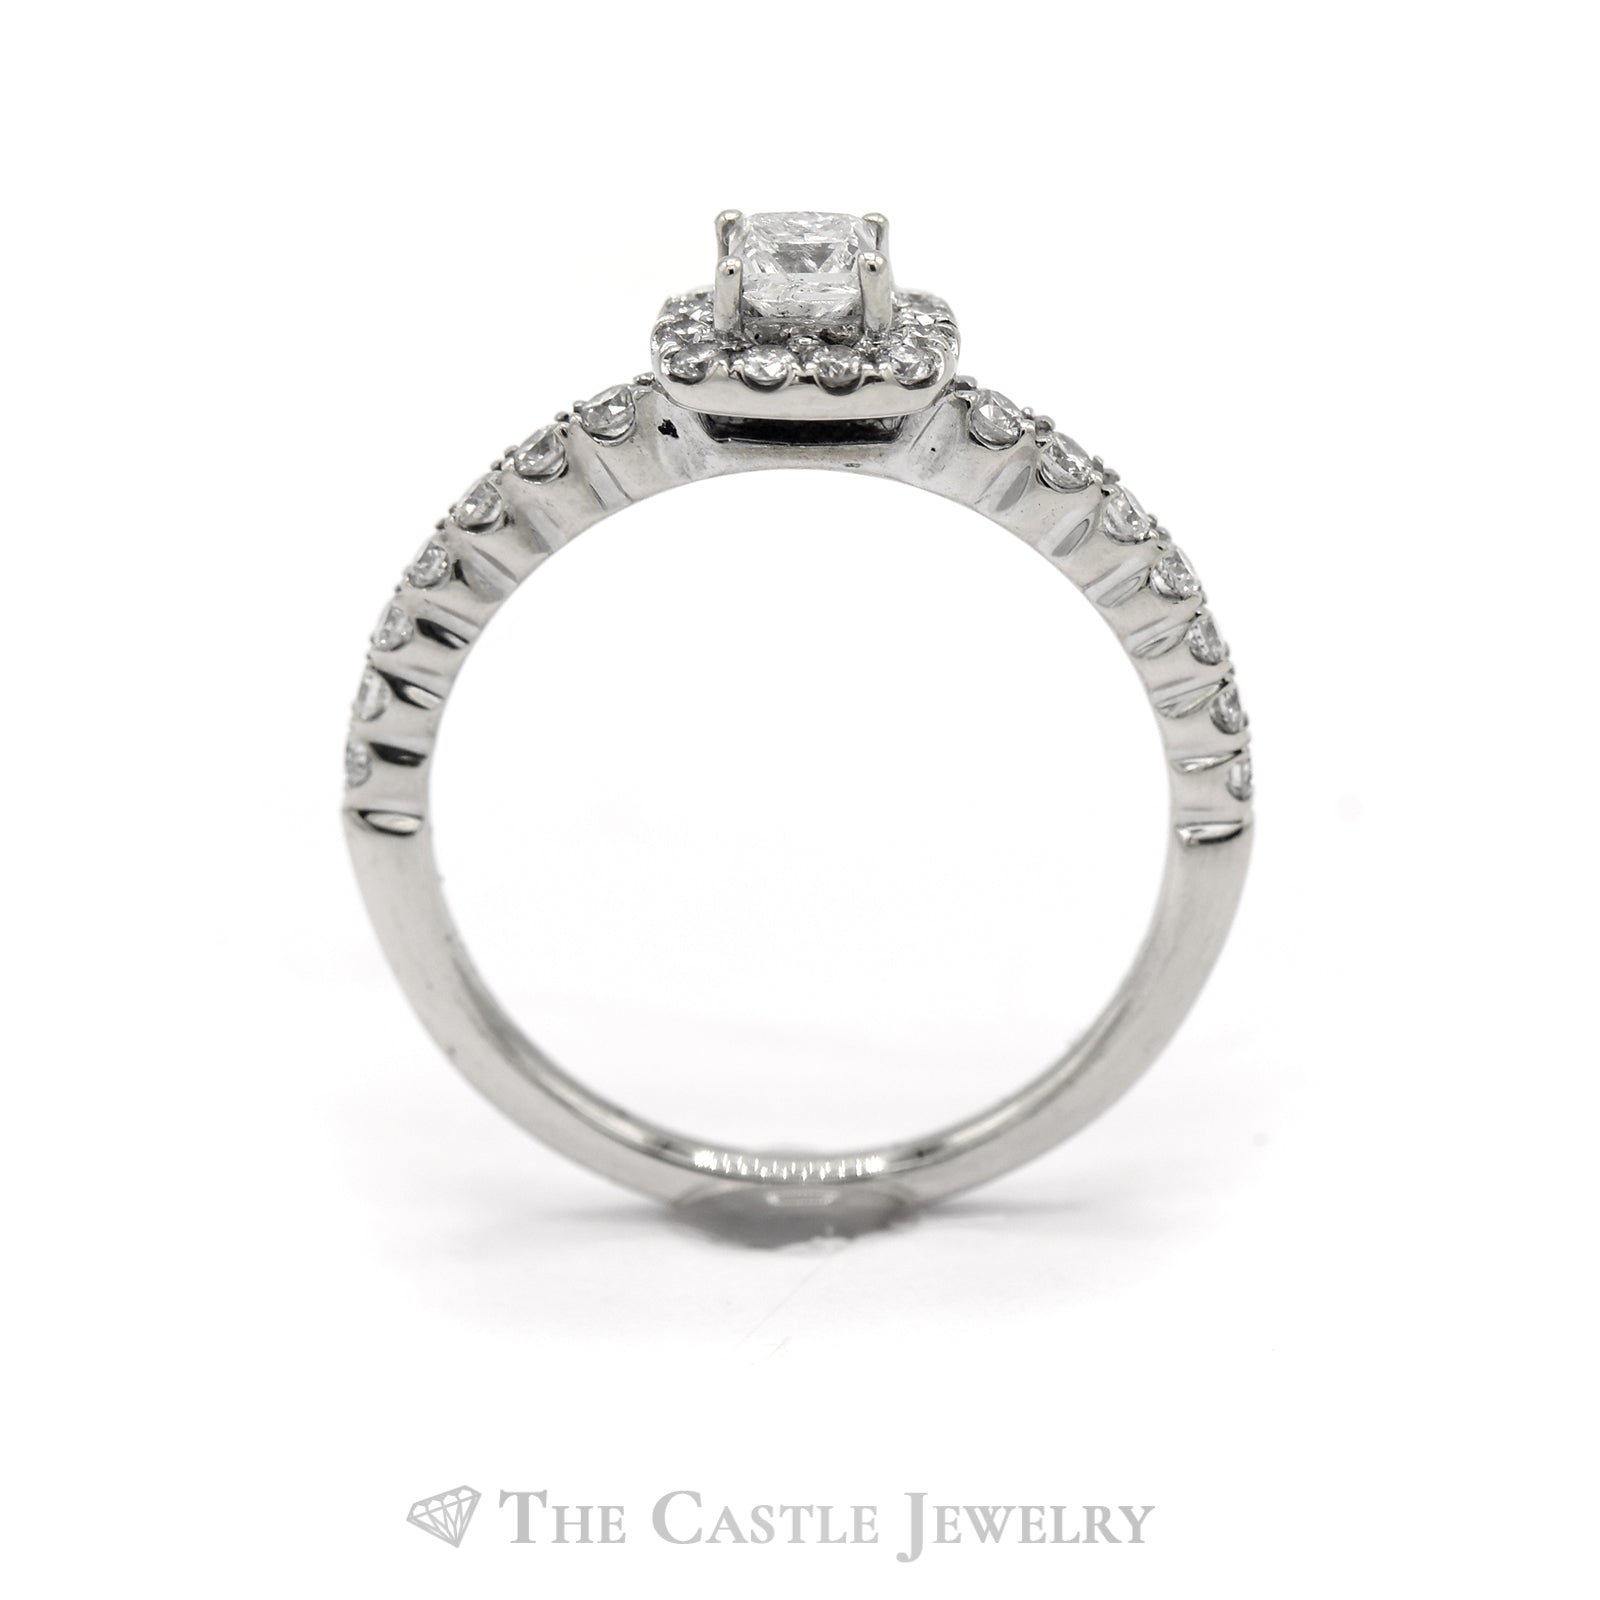 1/2 Carat Princess Cut Engagement Ring with Diamond Halo in 14KT White Gold-1